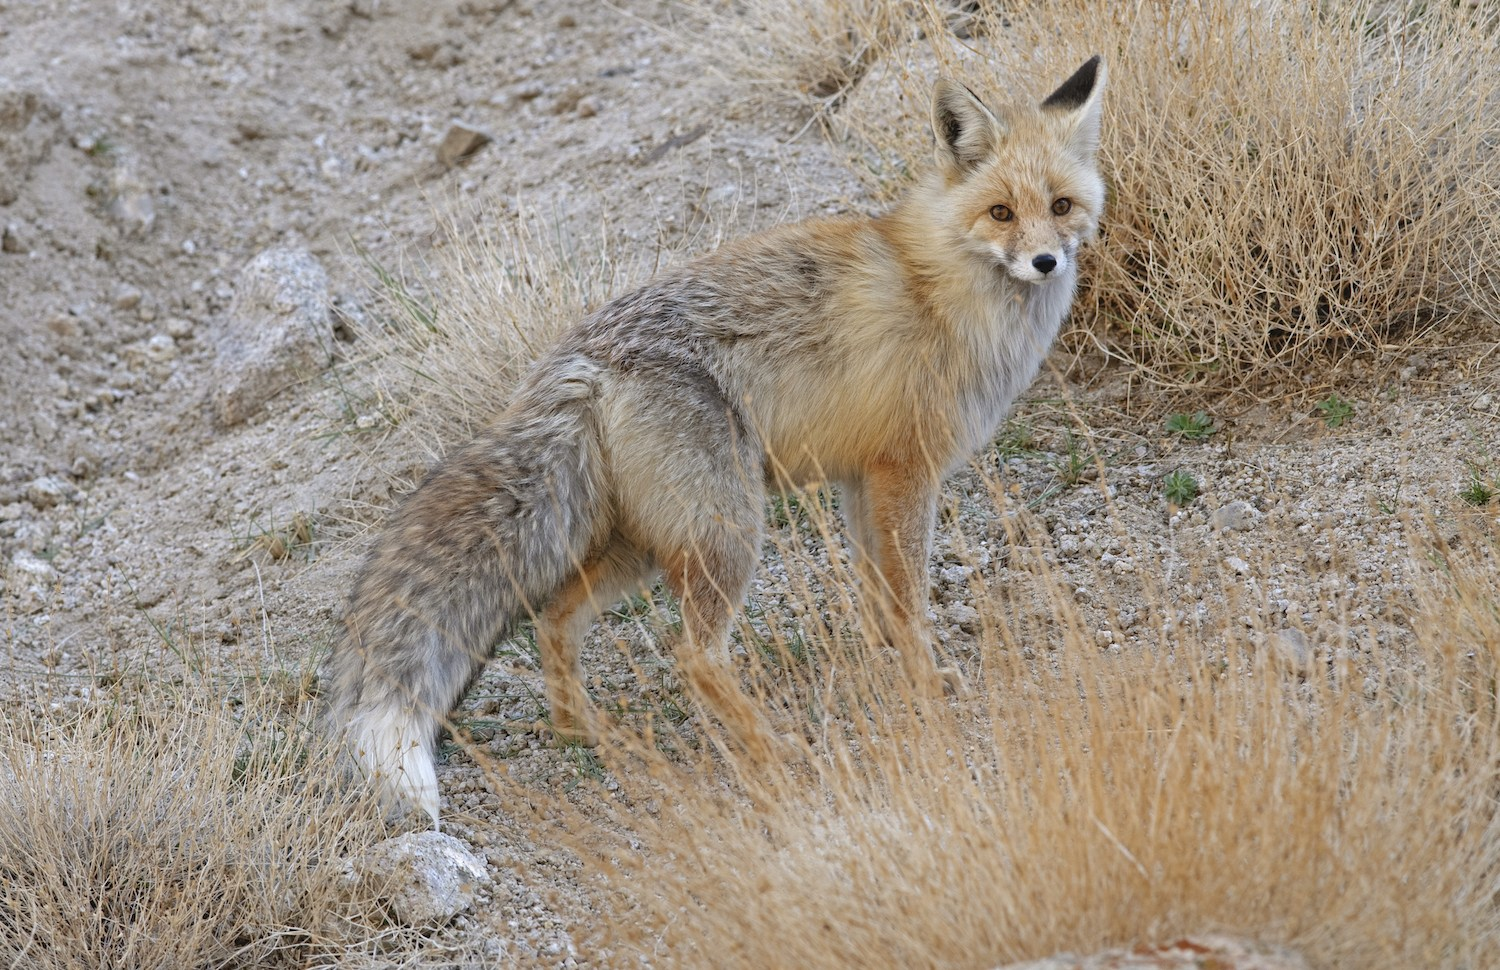 Red foxes have beautiful, bushy tails, with a signature white patch at the tip. The tail helps with balance, and keeps them warm during long, cold nights. Himalayan red foxes have much thicker fur than their desert fox cousins from Gujarat and Rajasthan.  The red fox (Vulpes vulpes) is found in a range of habitats, from isolated mountain regions in the Himalayas, to more urban areas, like Hyde Park in London.